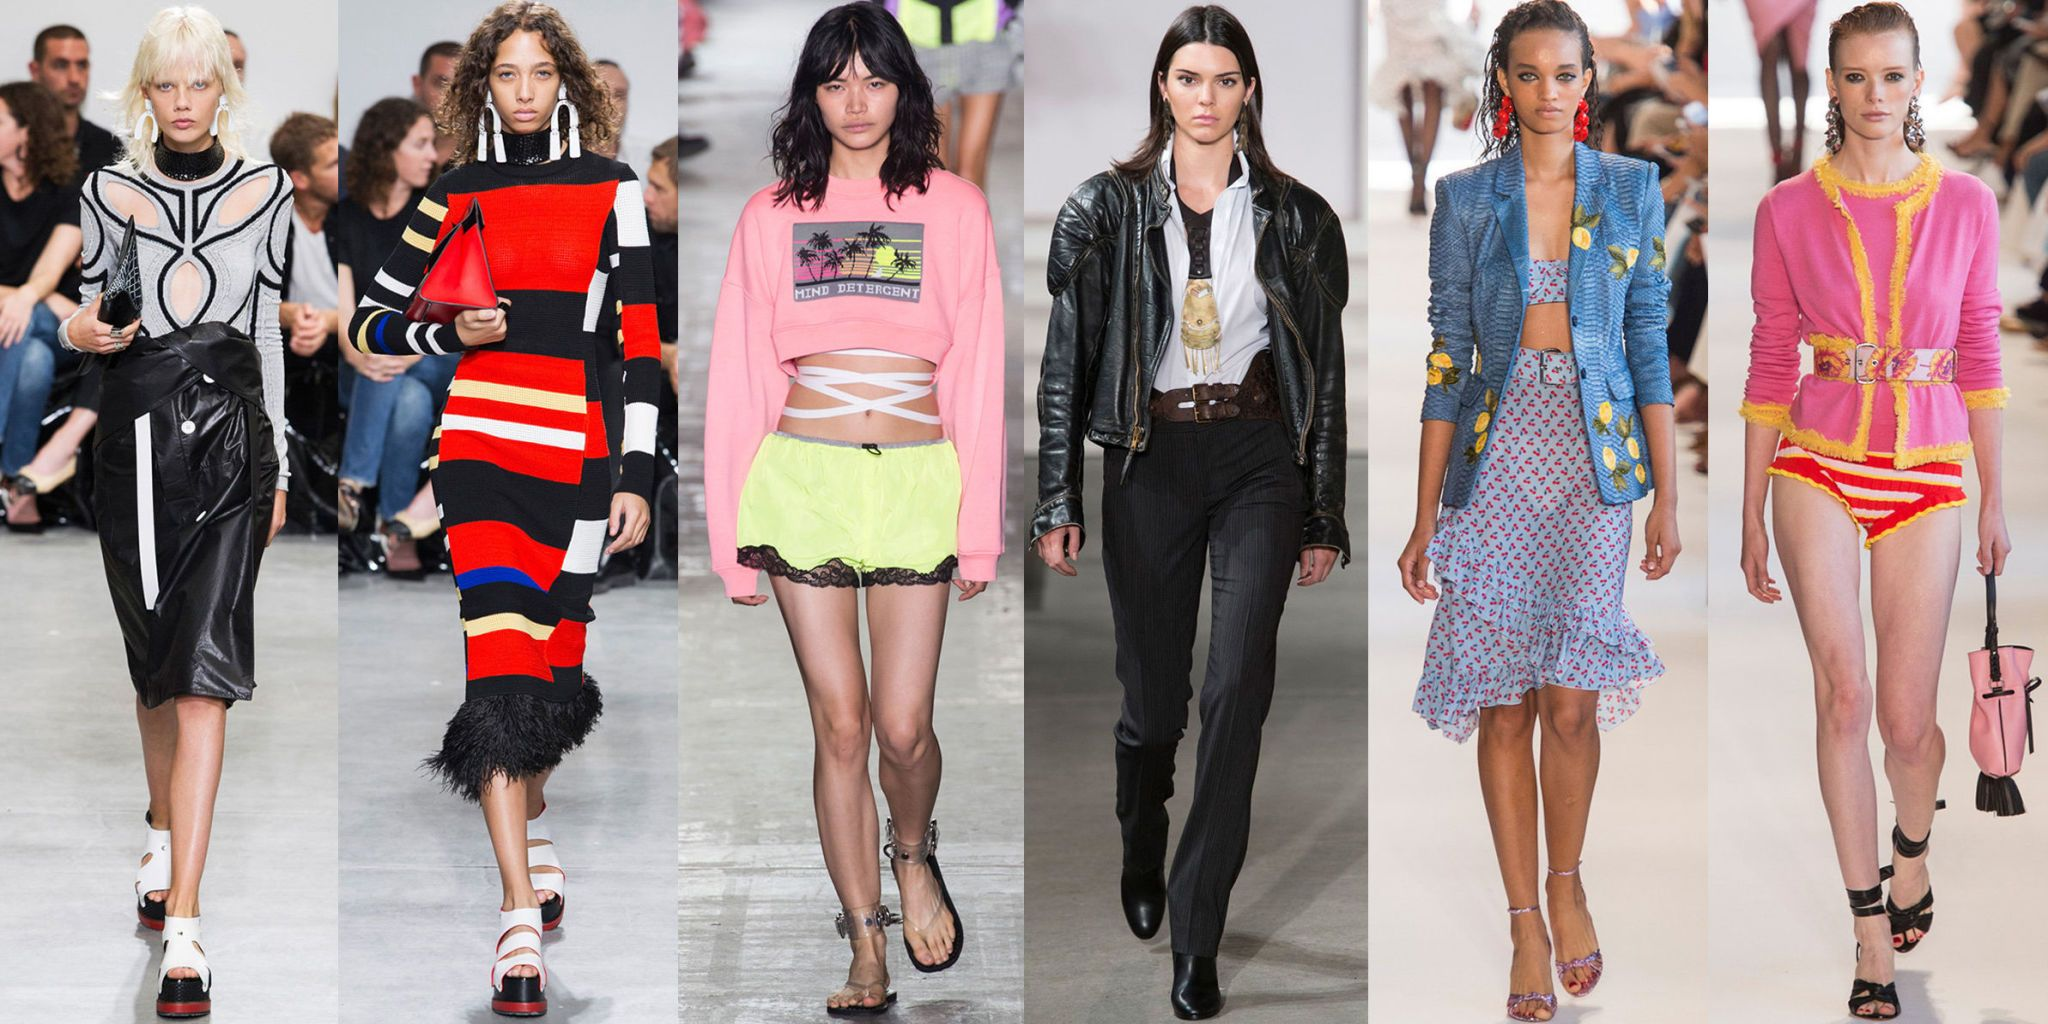 Fashion Trends 2017 - Latest Fashion Trends for 2017 - ELLE 38